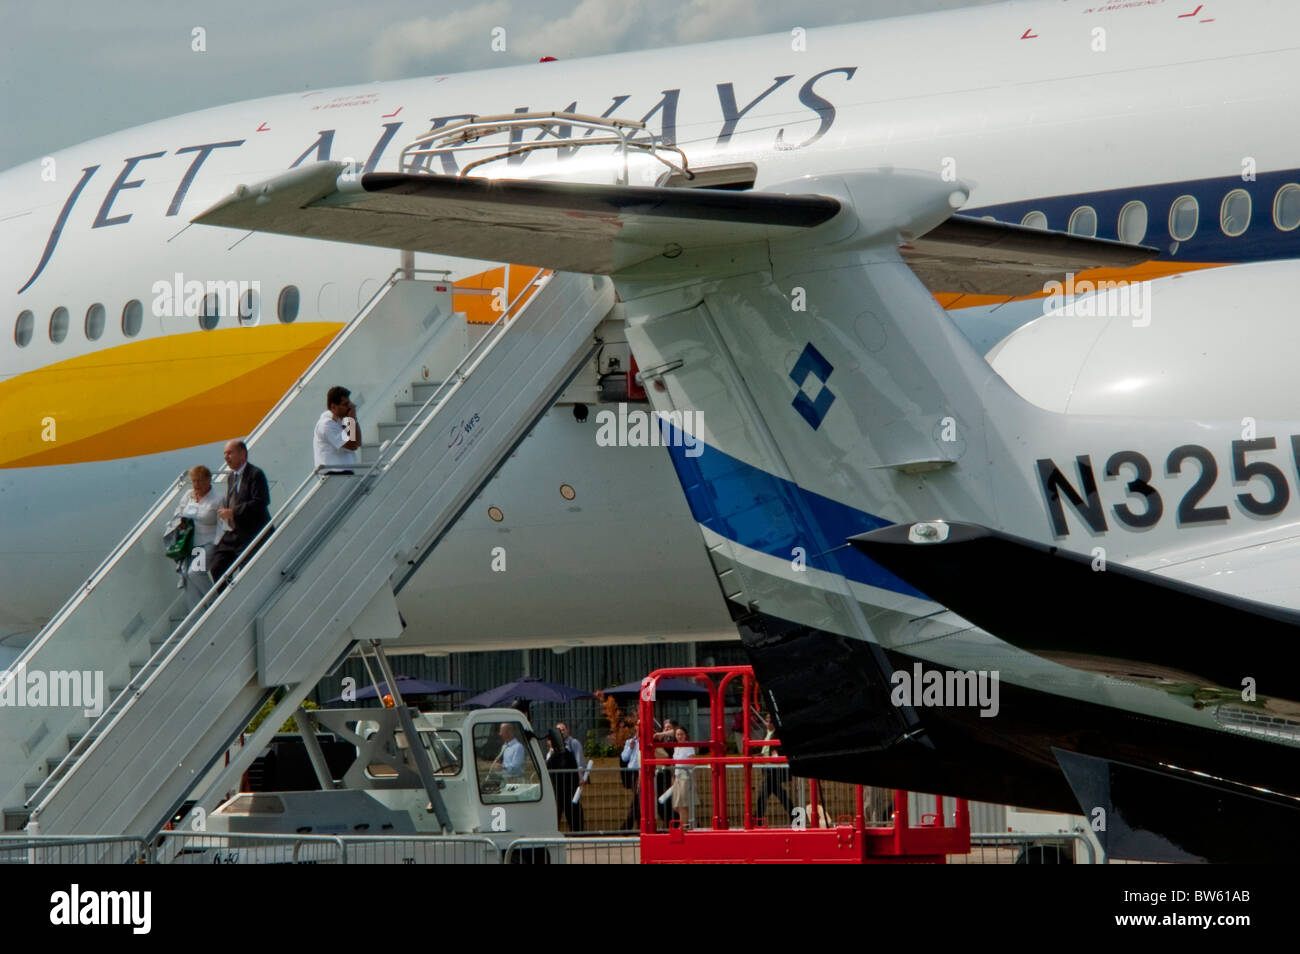 Paris, France, Trade Show,  Jet Airways, Aeroplanes on Display,  at the Bourget Airport, - Stock Image